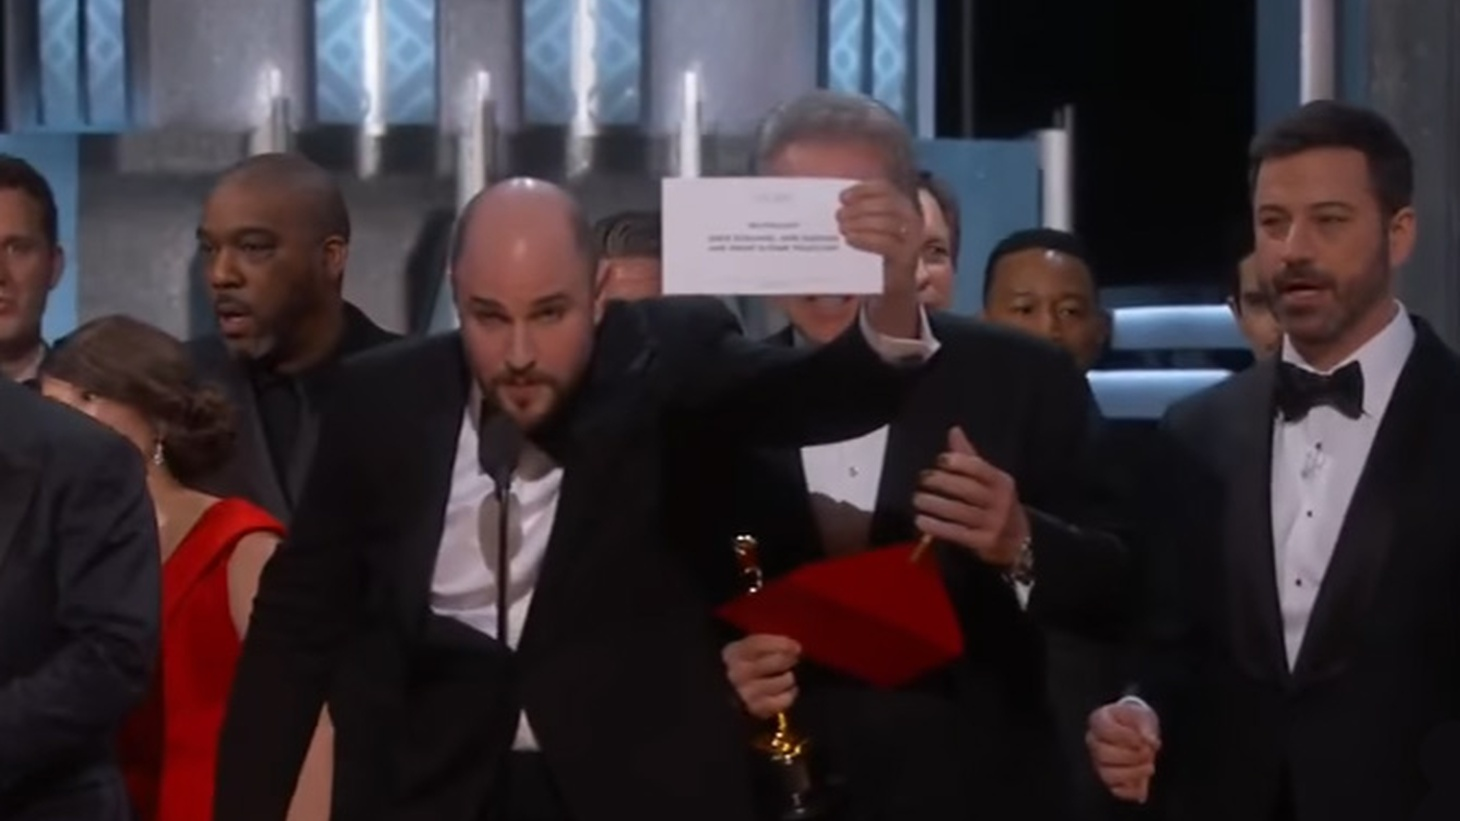 Even if you weren't watching the Oscars last night, you've likely heard that the producer of La La Land had to explain that that his did not win Best Picture after all — after three speeches thanking the Academy. It turned out that the presenters, Faye Dunaway and Warren Beatty, had been given the wrong envelope… as Beatty tried to explain.